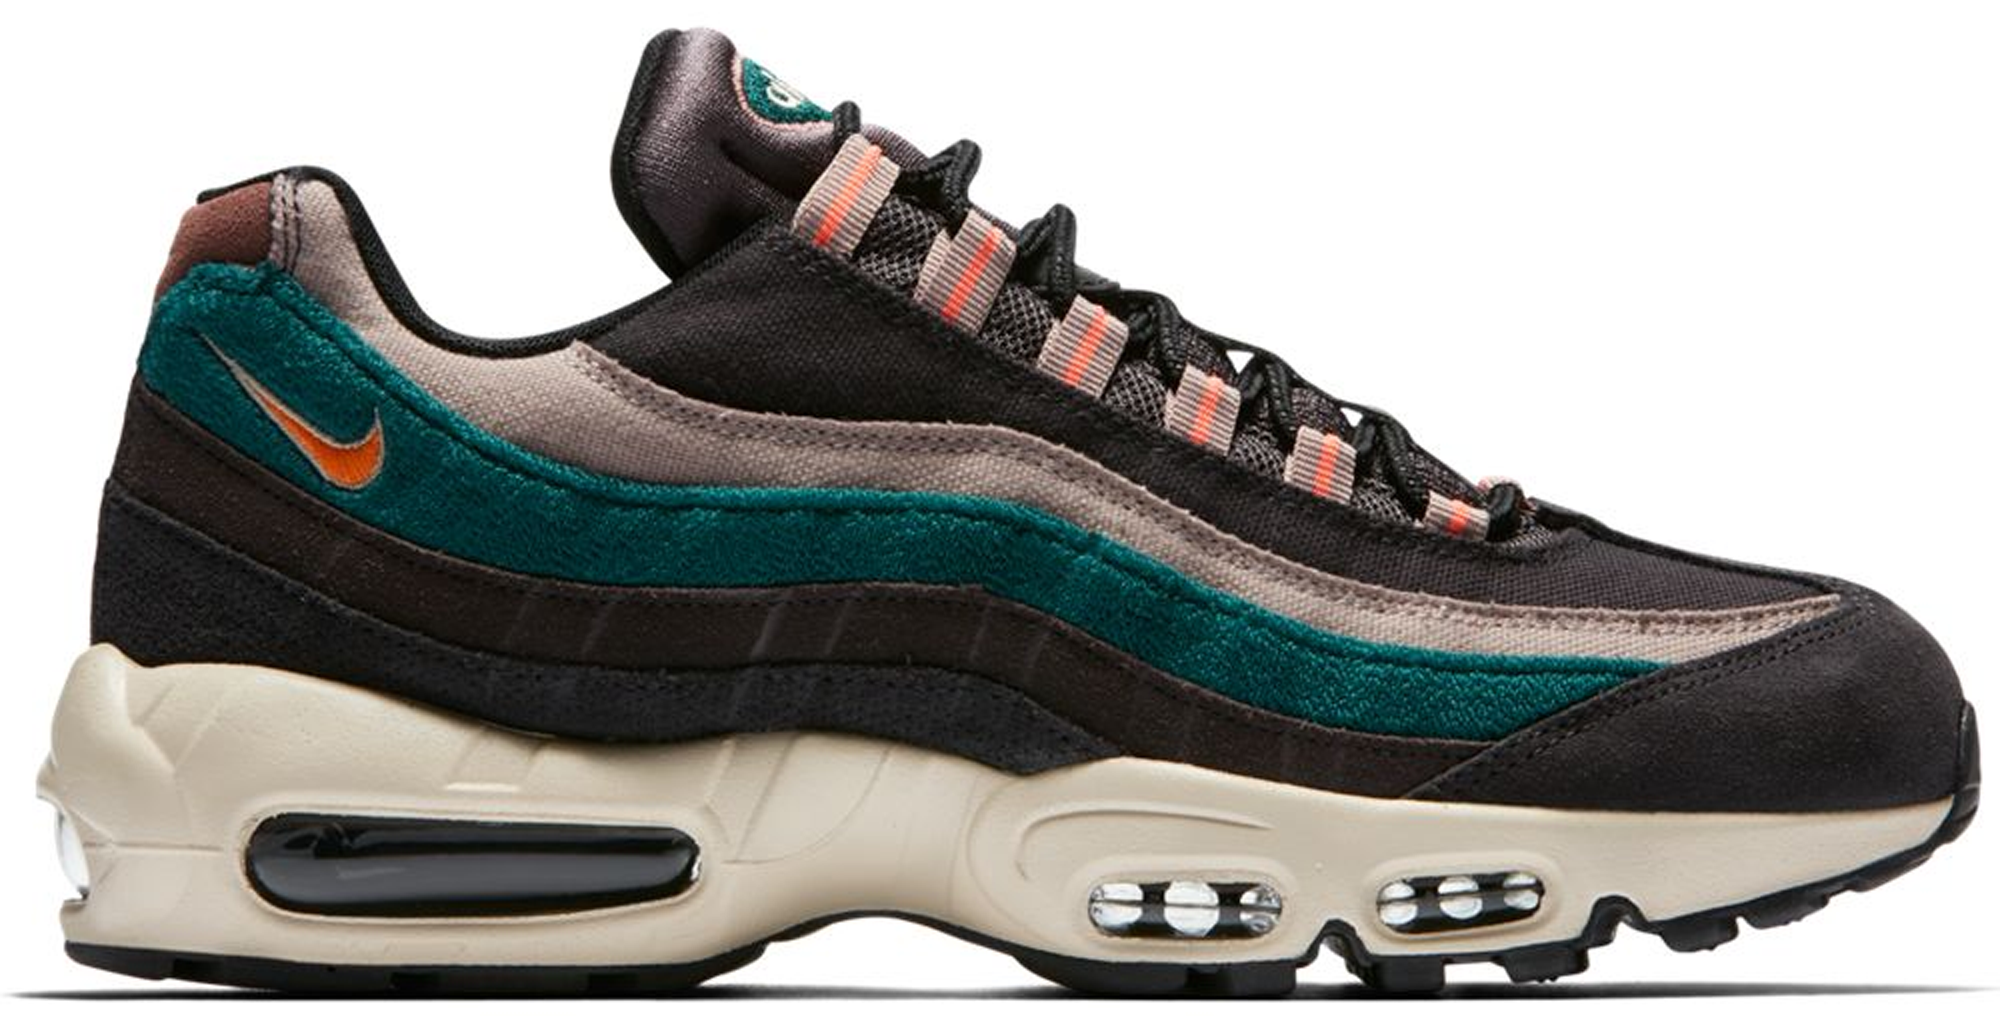 Air Max 95 Grey Rainforest Bright Mango In Oil Greythunder Grey rainforest bright Mango